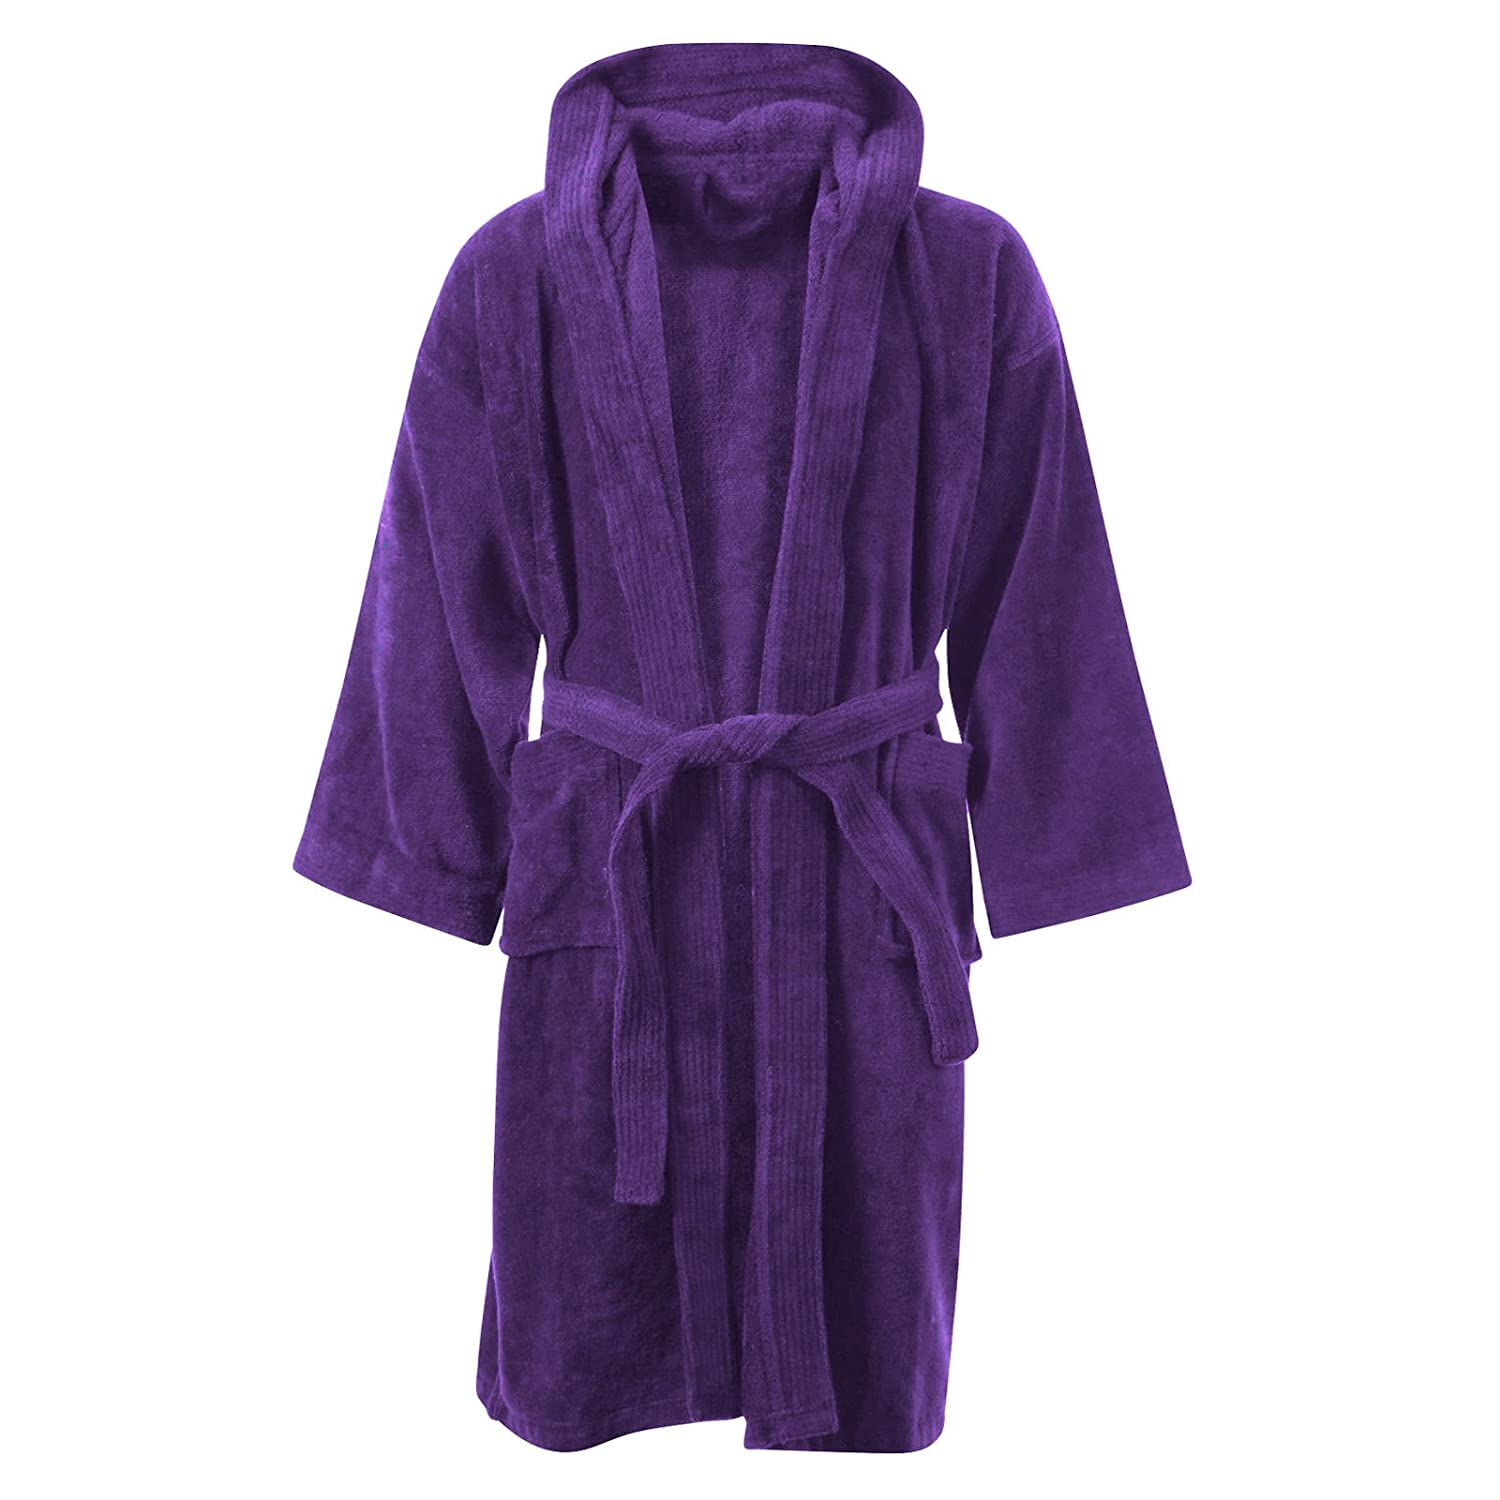 Kids Boys Girls Bathrobe 100% Egyptian Cotton Luxury Velour Towelling  Hooded Dressing Gown Soft Fine Comfortable Nightwear Terry Towel Bath Robe  Lounge Wear ... 84de9cc65